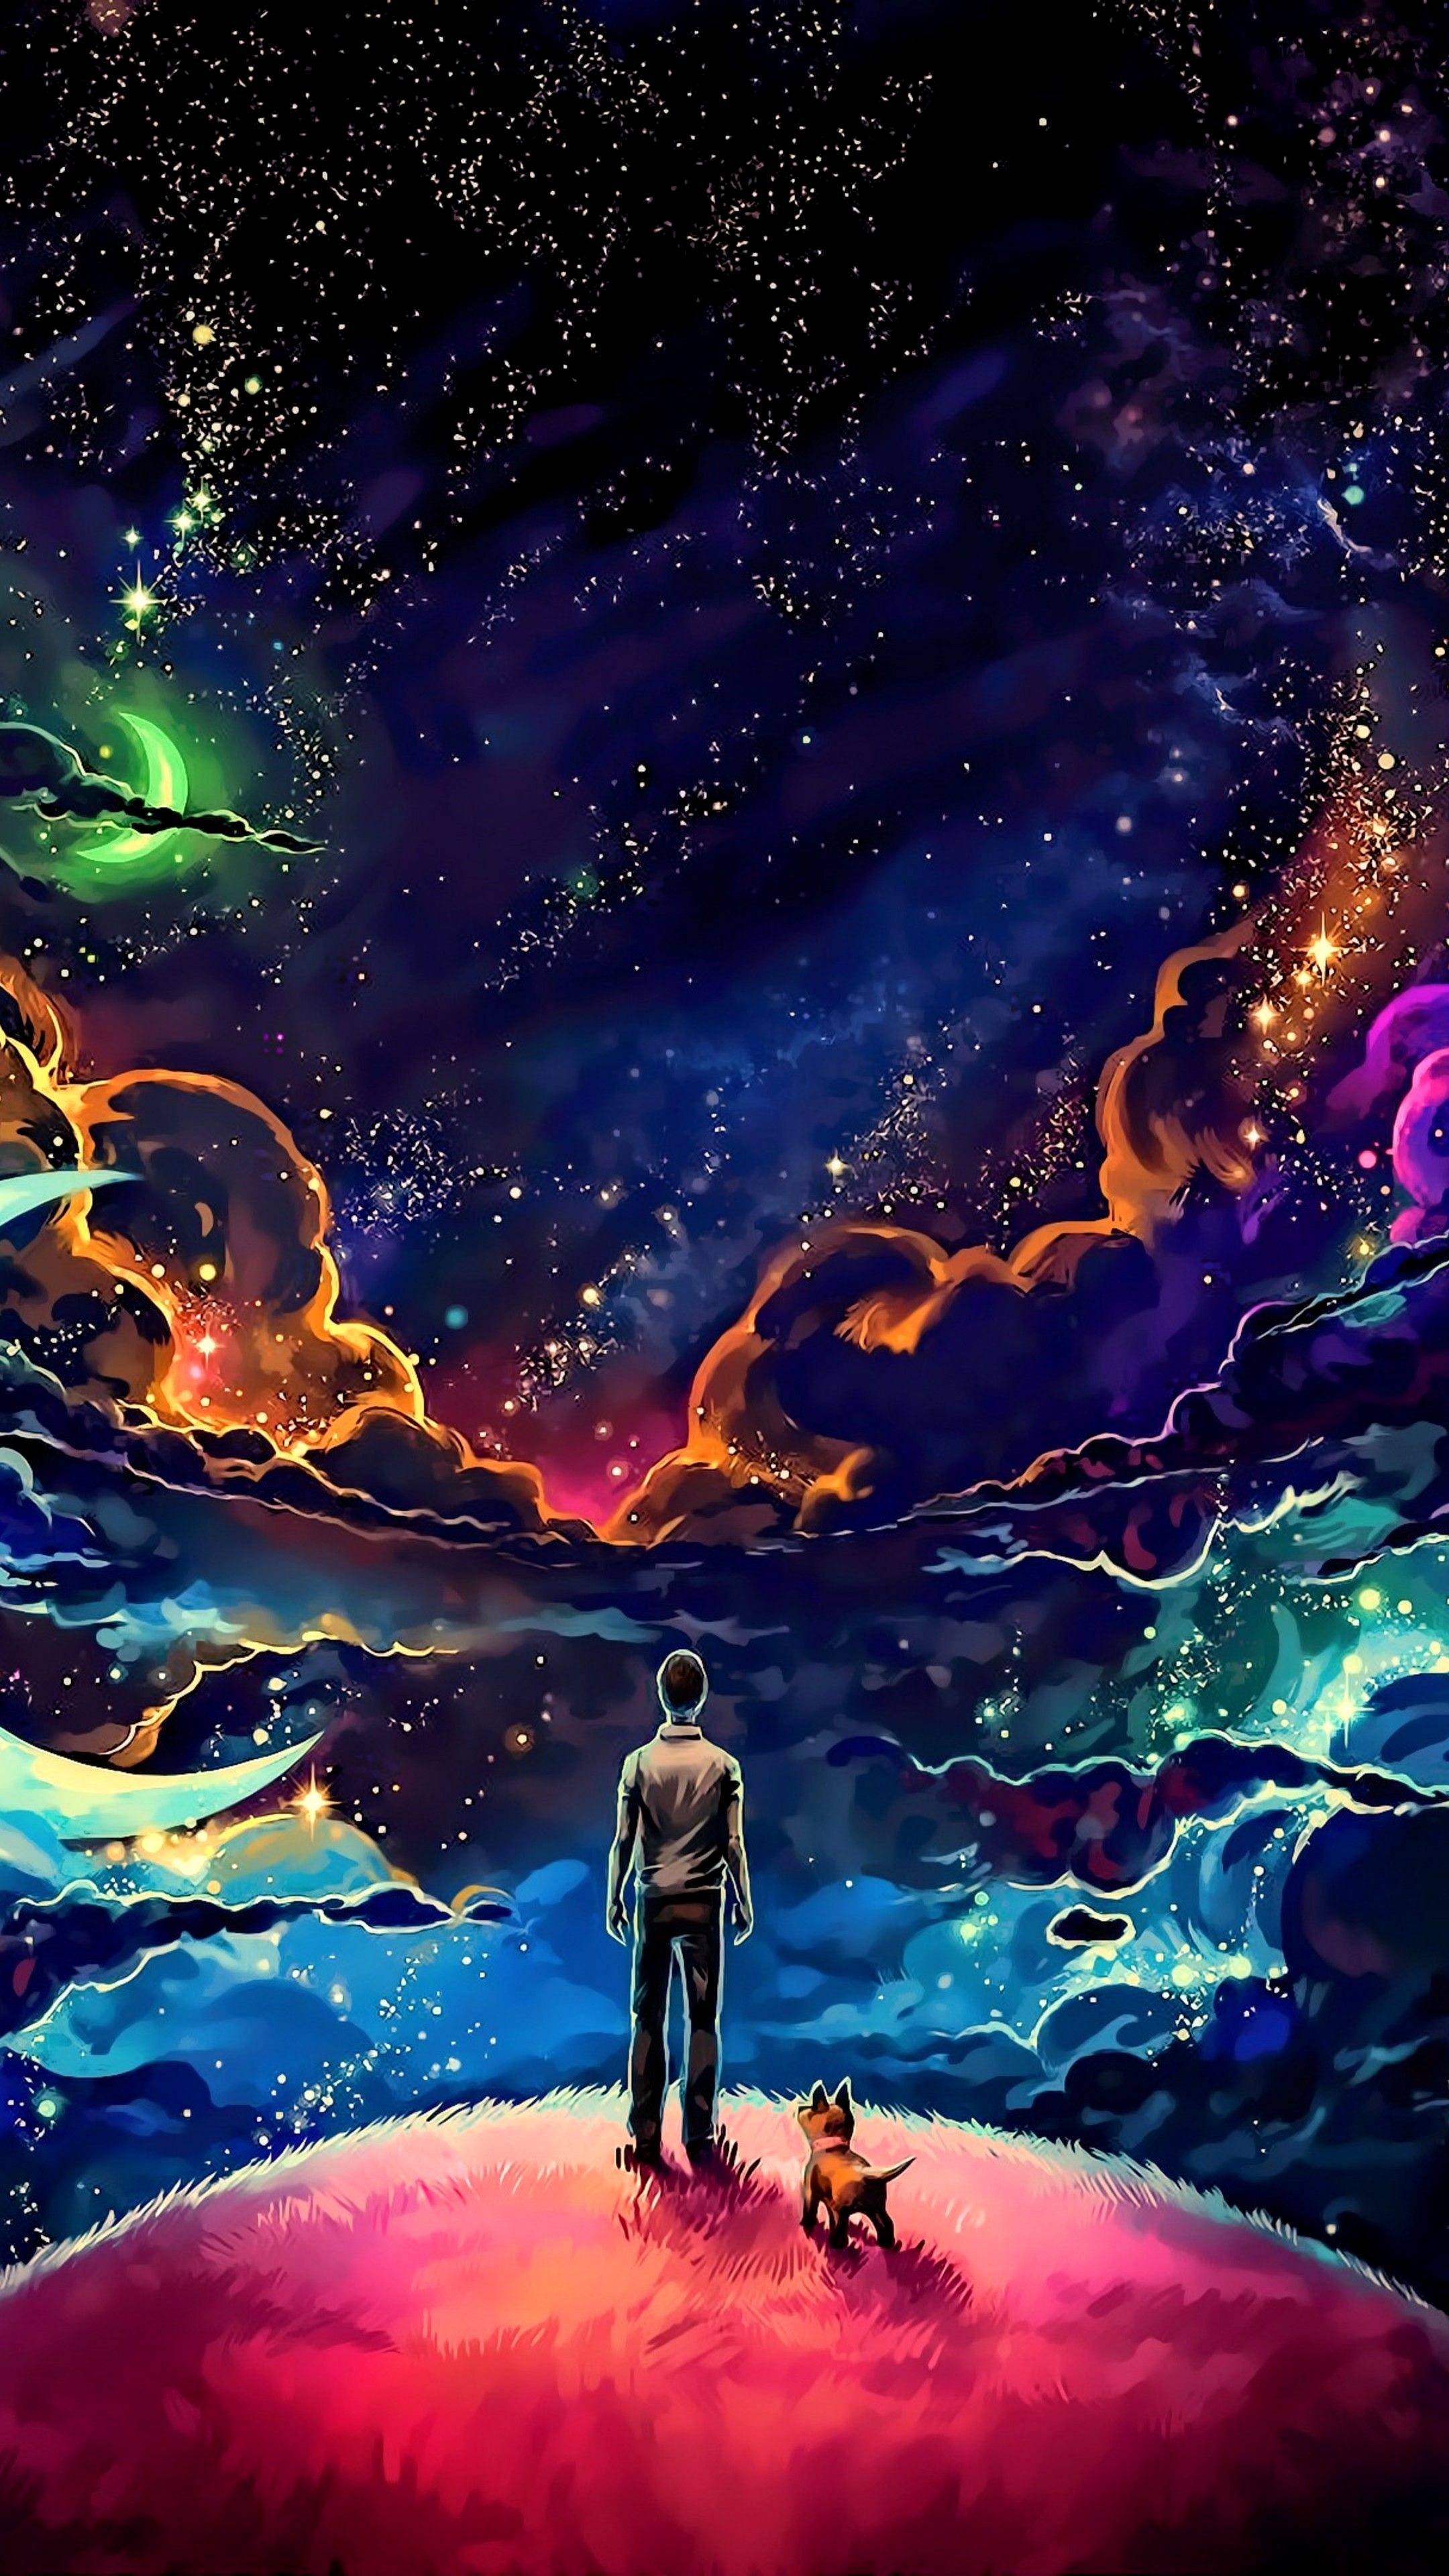 4k Space Galaxy Colorful Animated Wallpaper Ideas Galaxy Wallpaper Samsung Galaxy Wallpaper Samsung Wallpaper